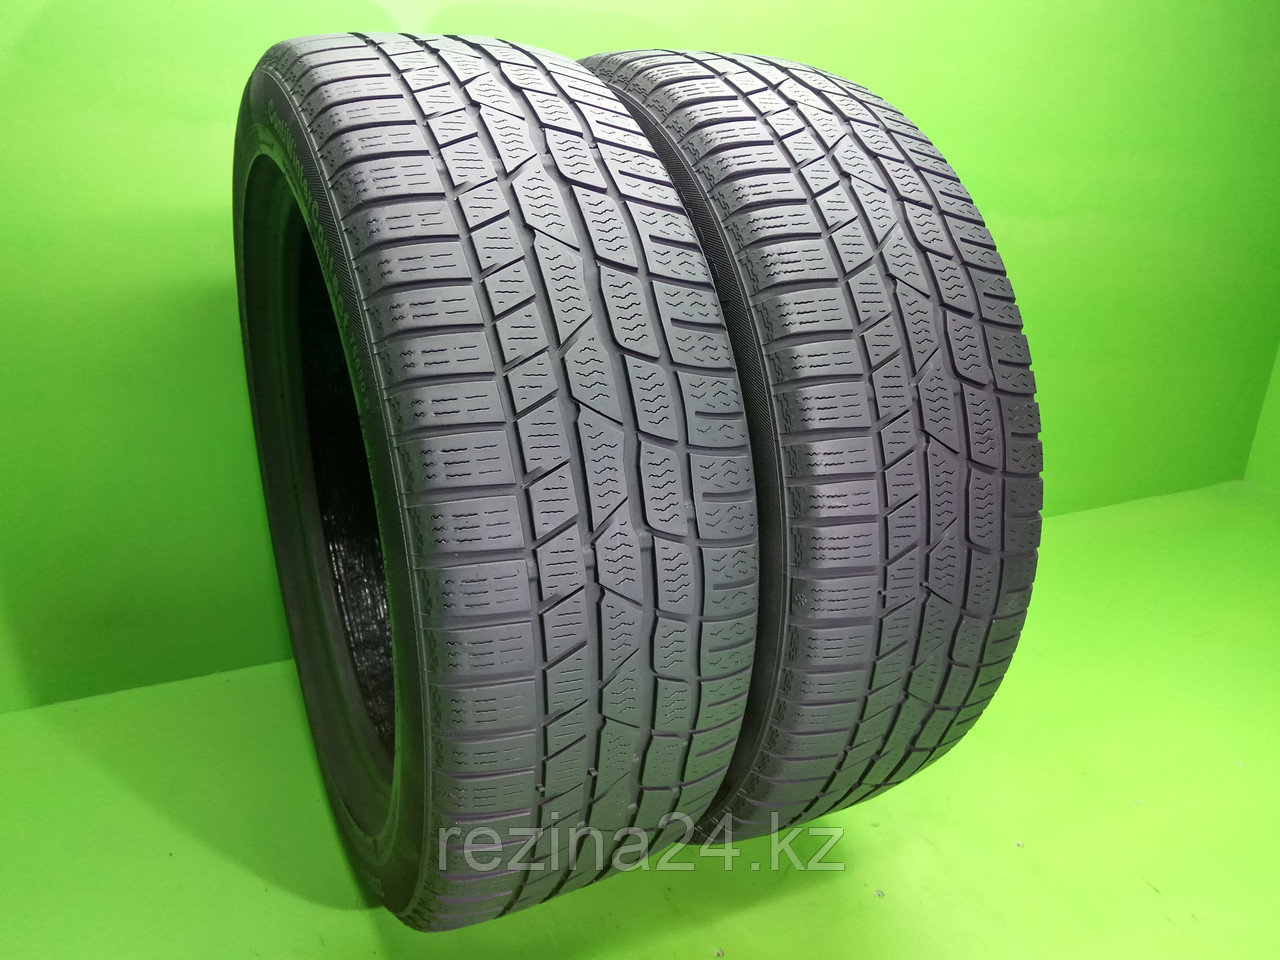 205/50 R 17 (93H) M+S CONTINENTAL Conti Winter Contact всесезонные б/у шины